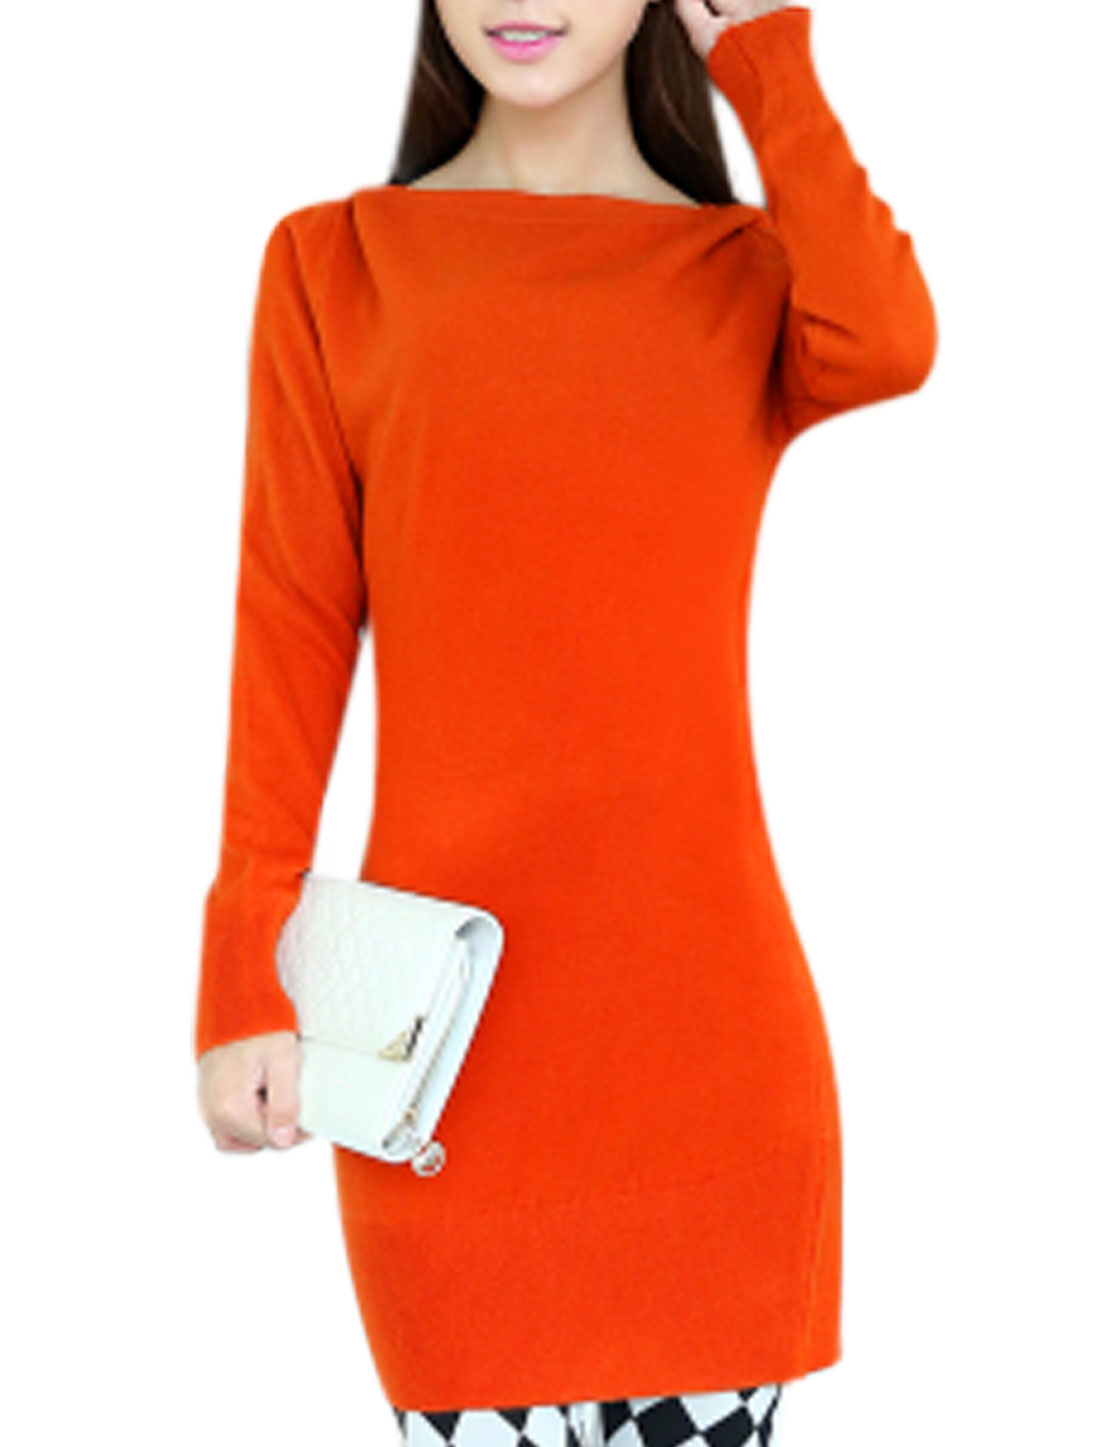 Ladies Cozy Fit Stretchy Full Sleeves Orange Tunic Knit Top S